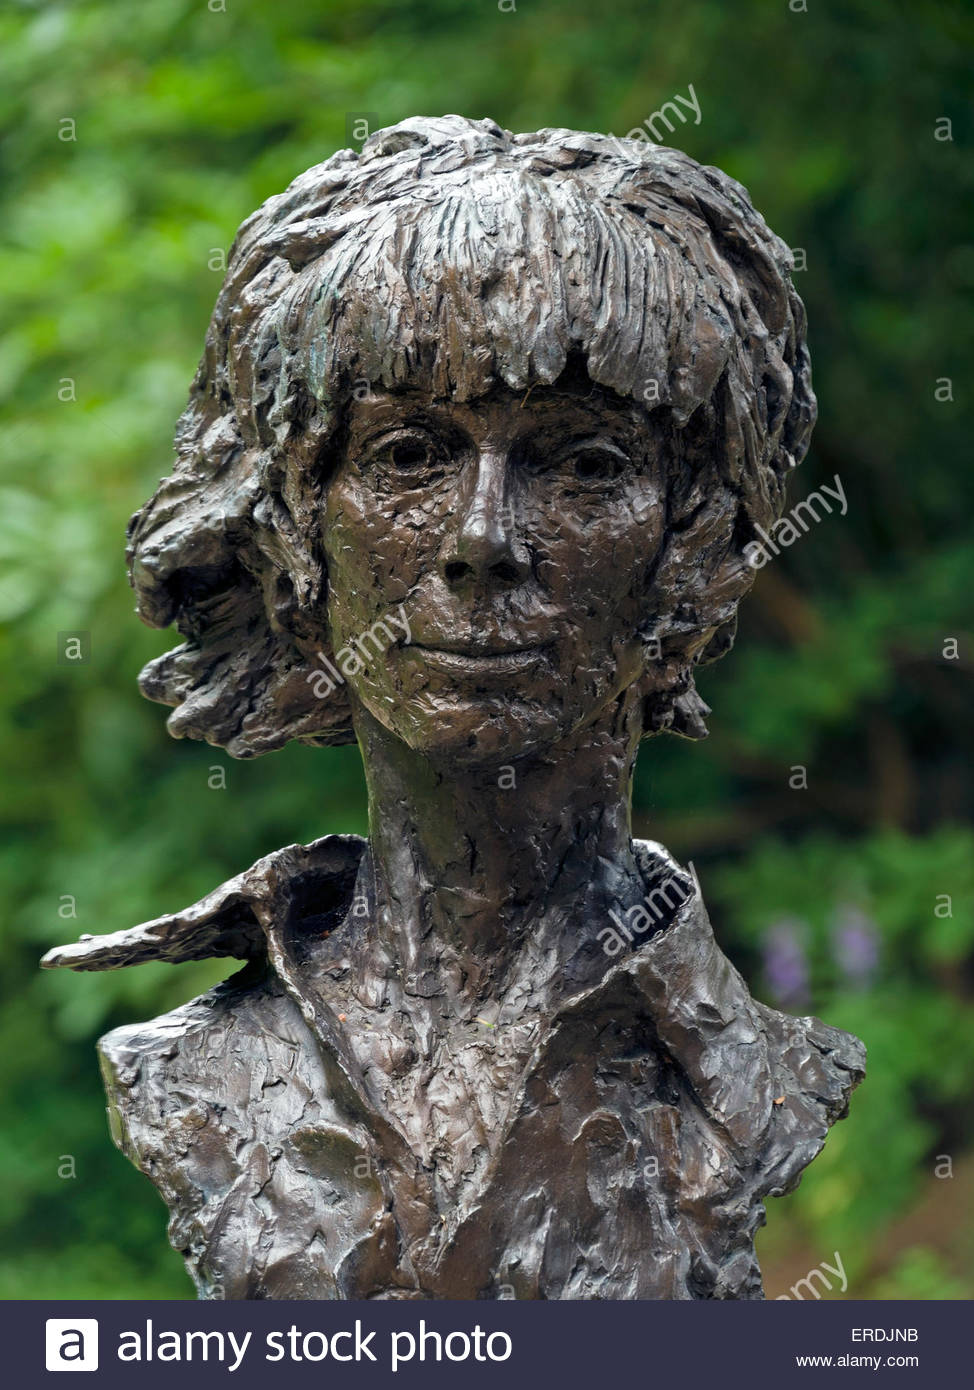 Bust sculpture of Deborah, Dowager Duchess of Devonshire on display in Chatsworth Gardens, Derbyshire, England, - Stock Image